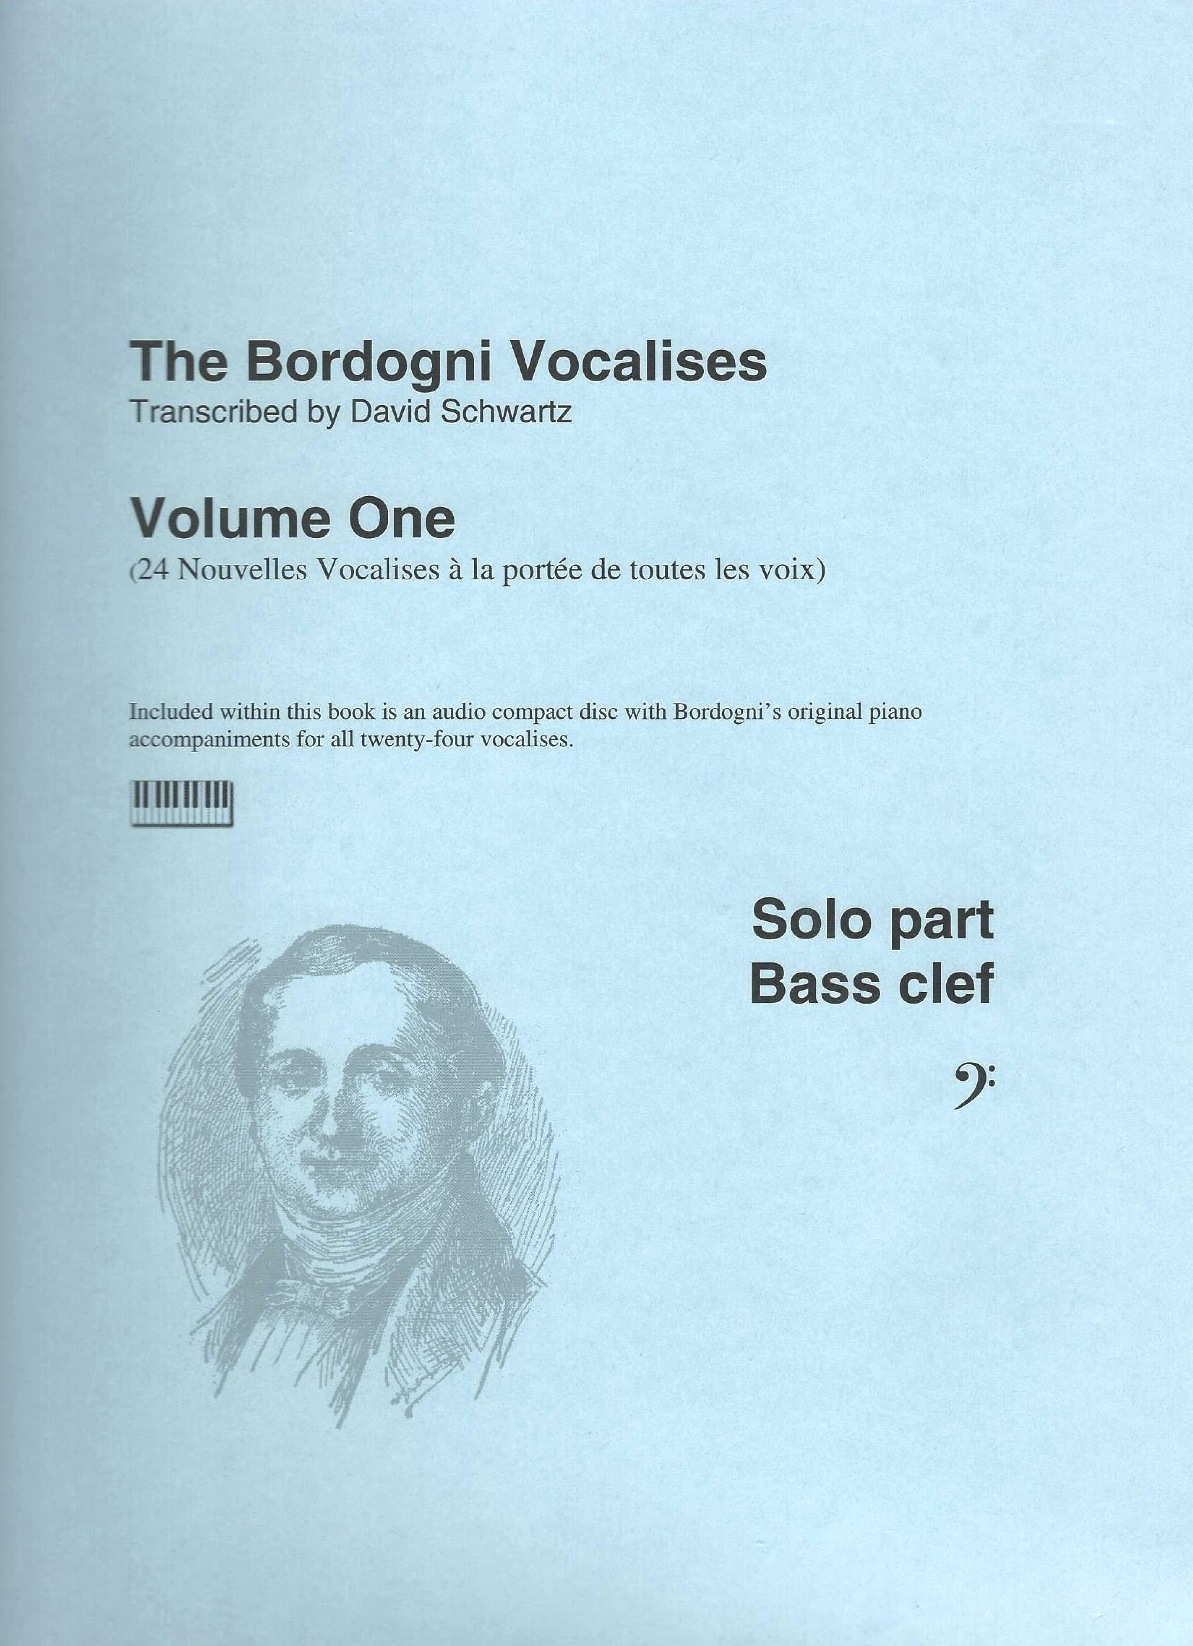 Bordogni Vocalises (Rochut) in bass clef - Vol.1 (24 pieces) - with piano acc. on CD